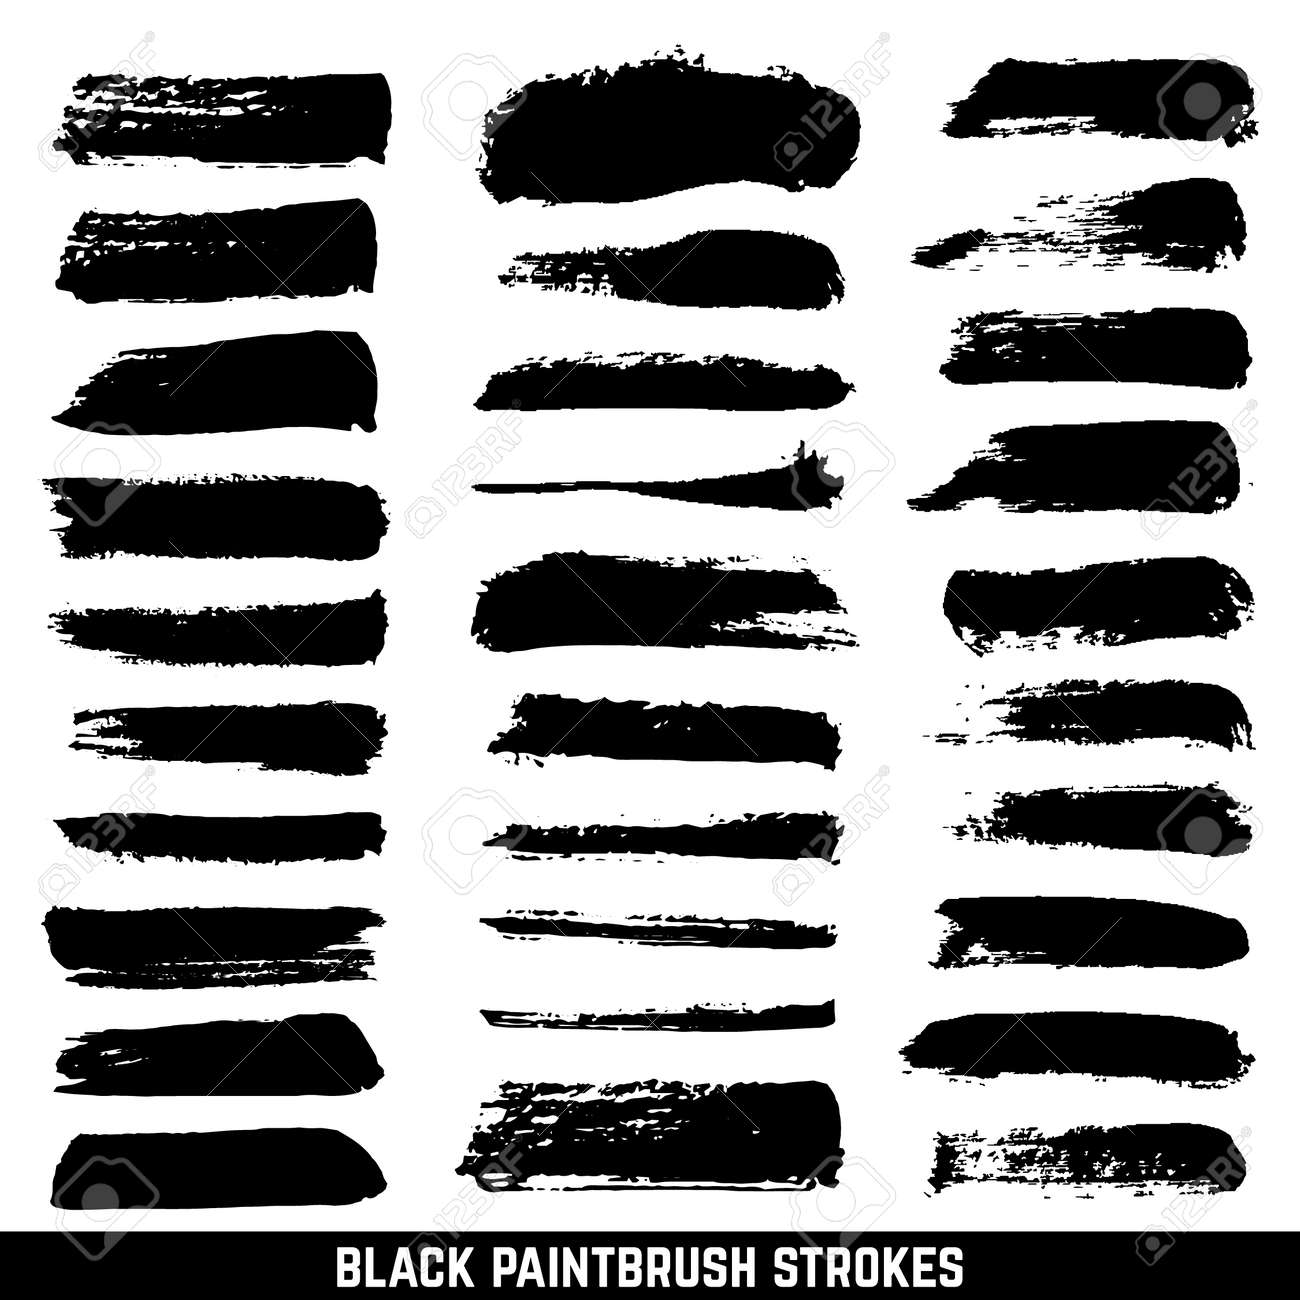 Vector artistic ink paint blob brushes. Inked brushed strokes isolated. Dirty black brushstrokes collection. Illustration paintbrush drawing ink stroke - 166820318